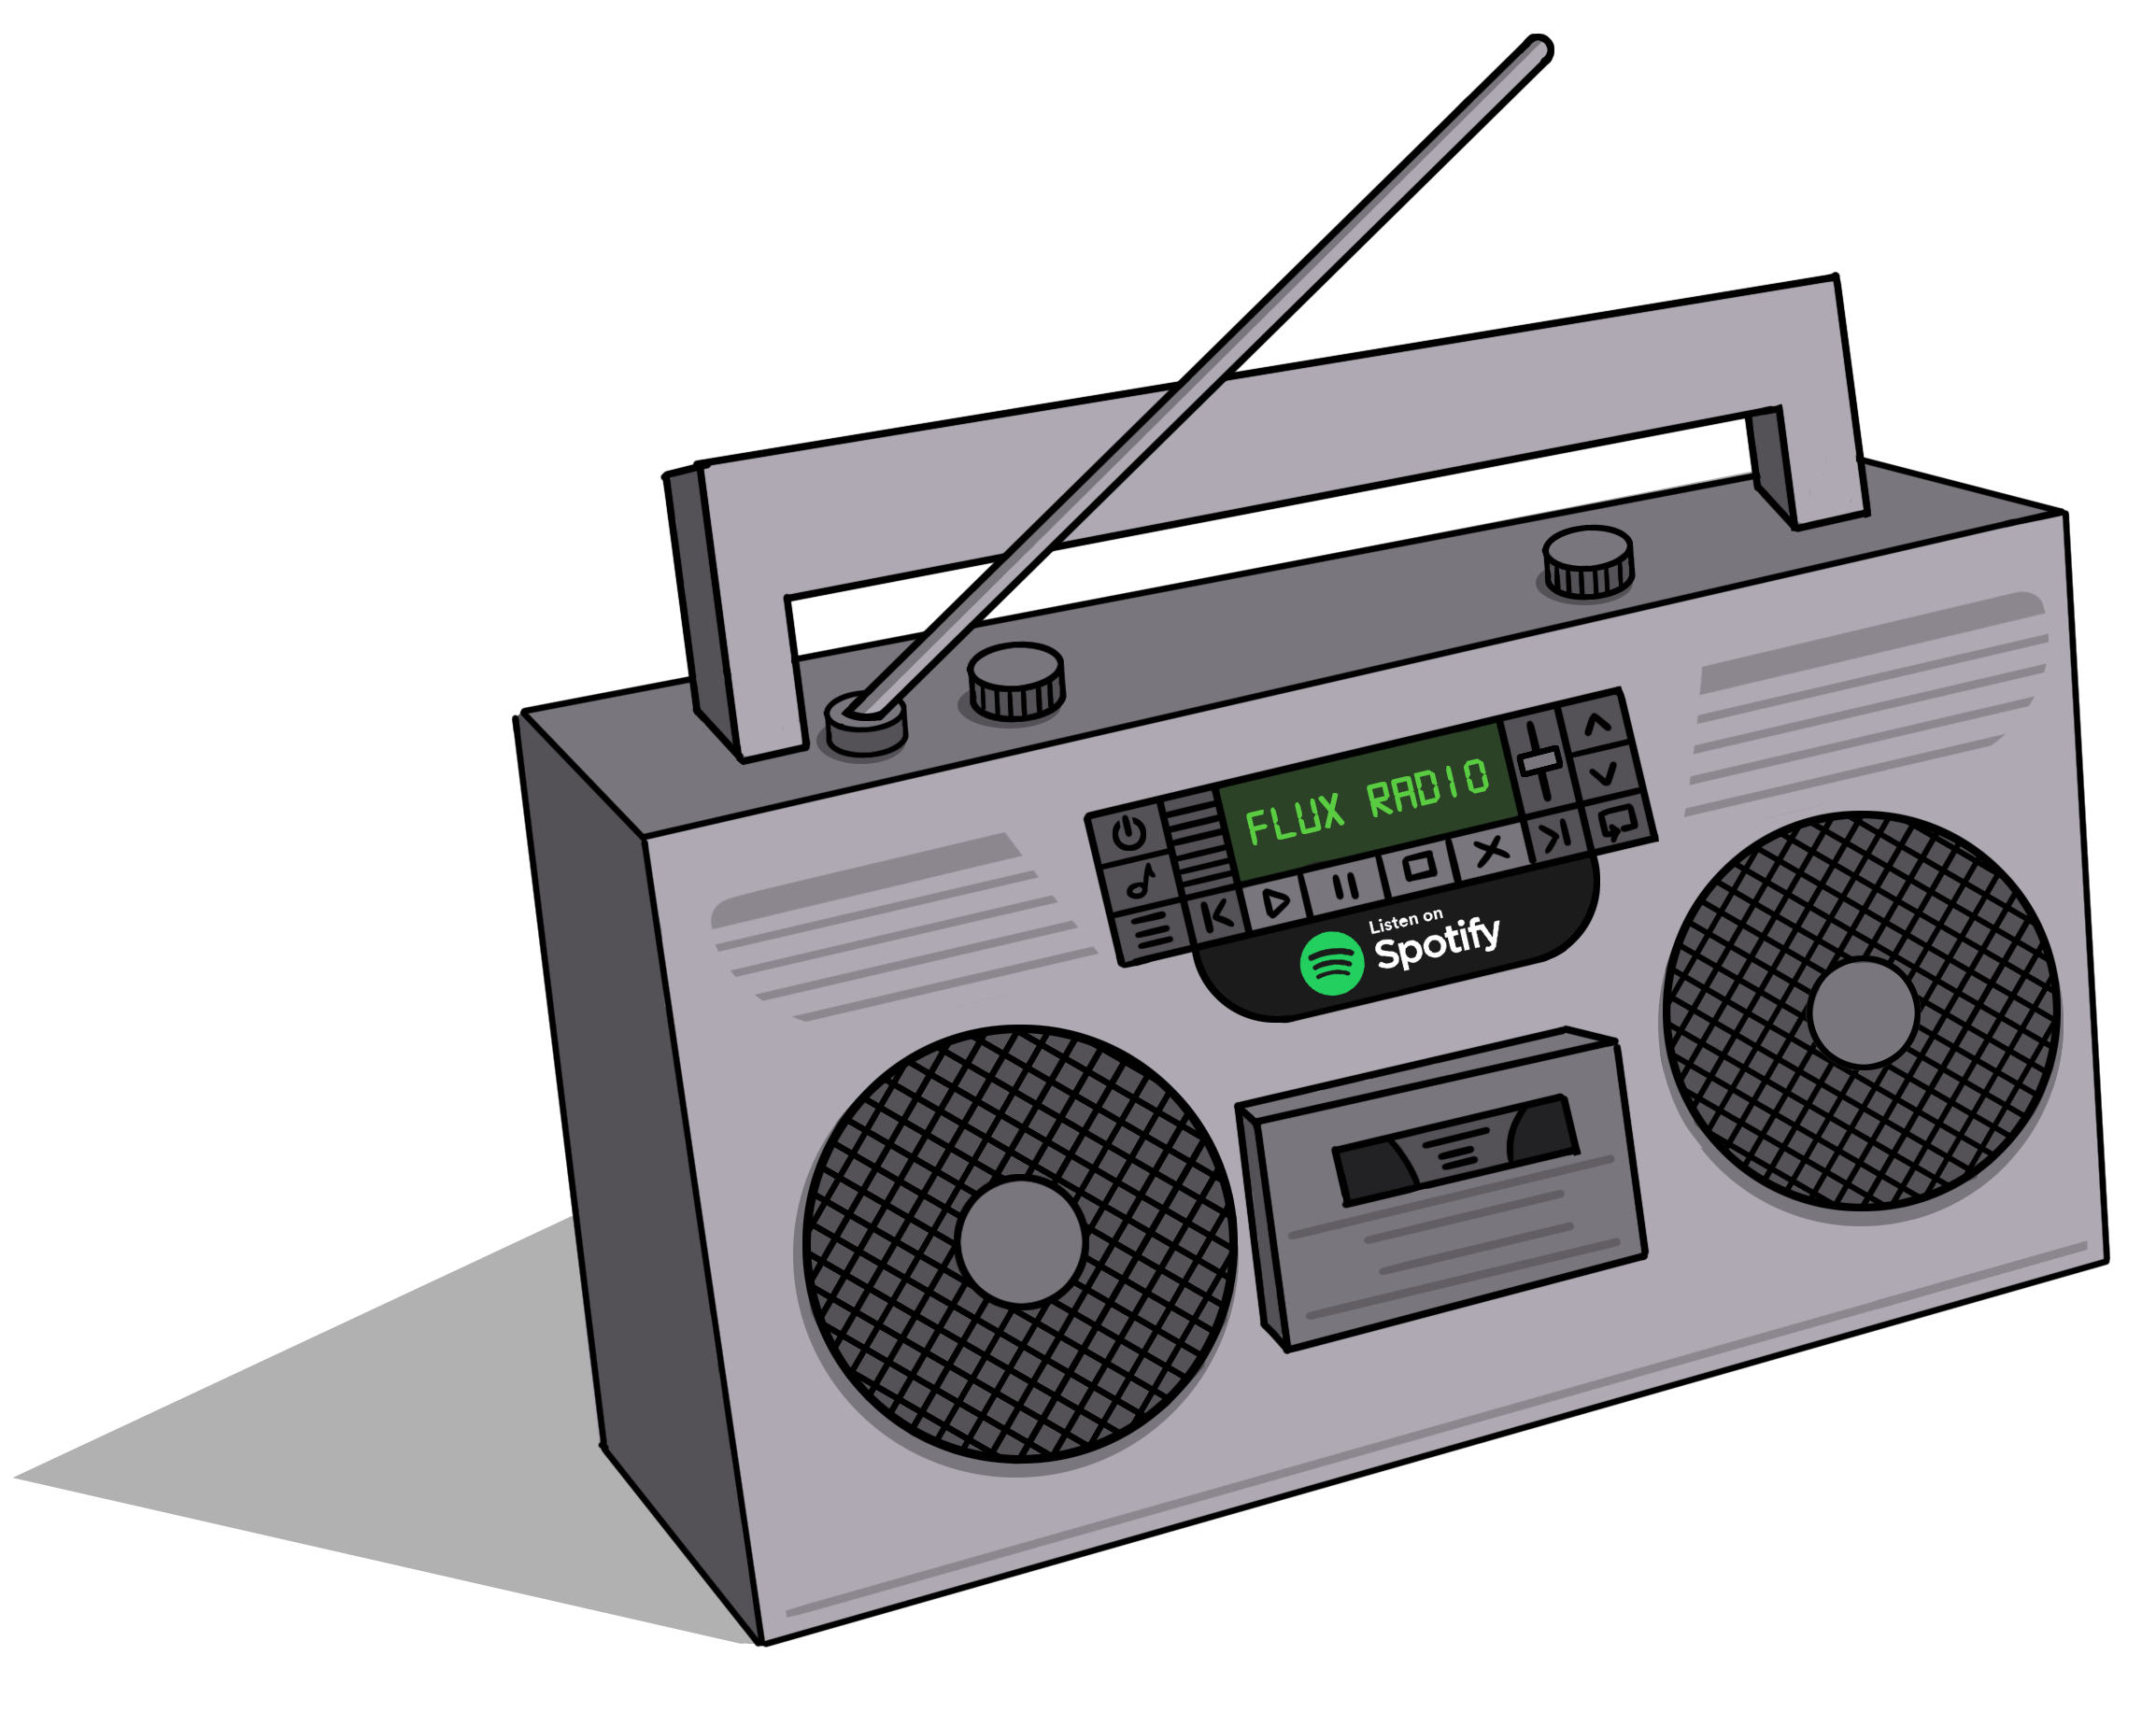 Flux Pavillion Boombox Illustration